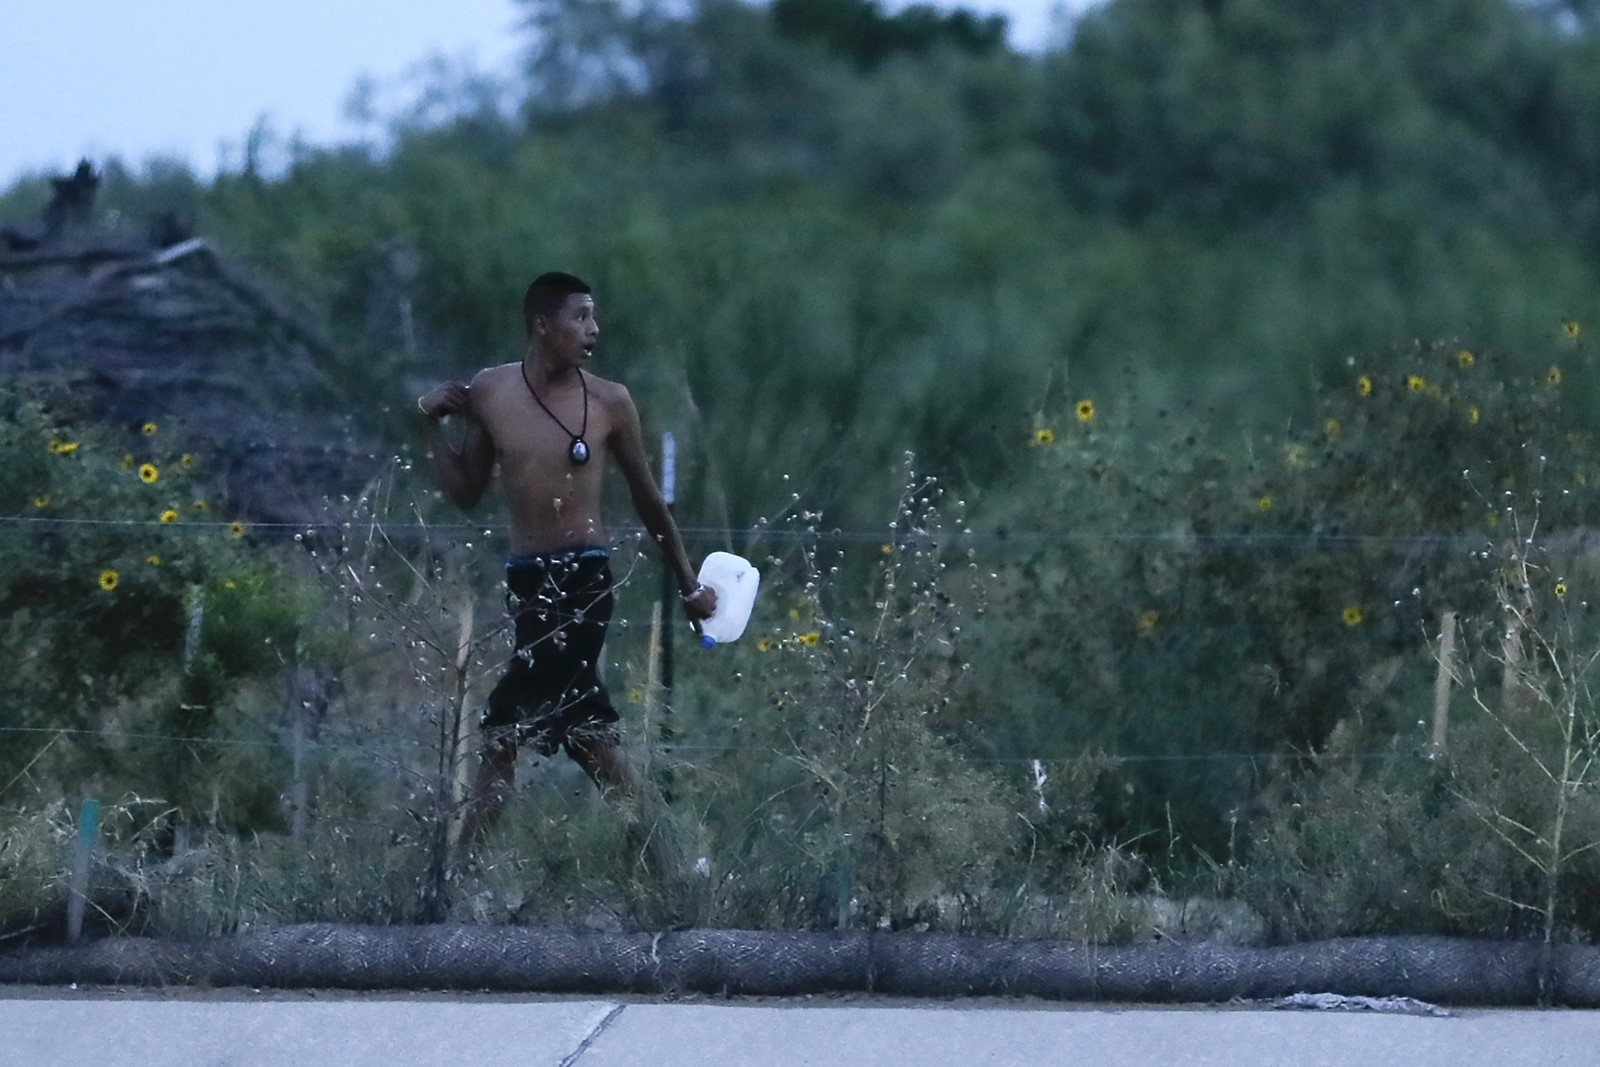 A smuggler runs along the outskirts of colonia De La Cruz in Roma after escorting a group of migrants across the Rio Grande. The riverside town is a hot spot for illegal immigration. — Photograph: Robert Gauthier/Los Angeles Times.